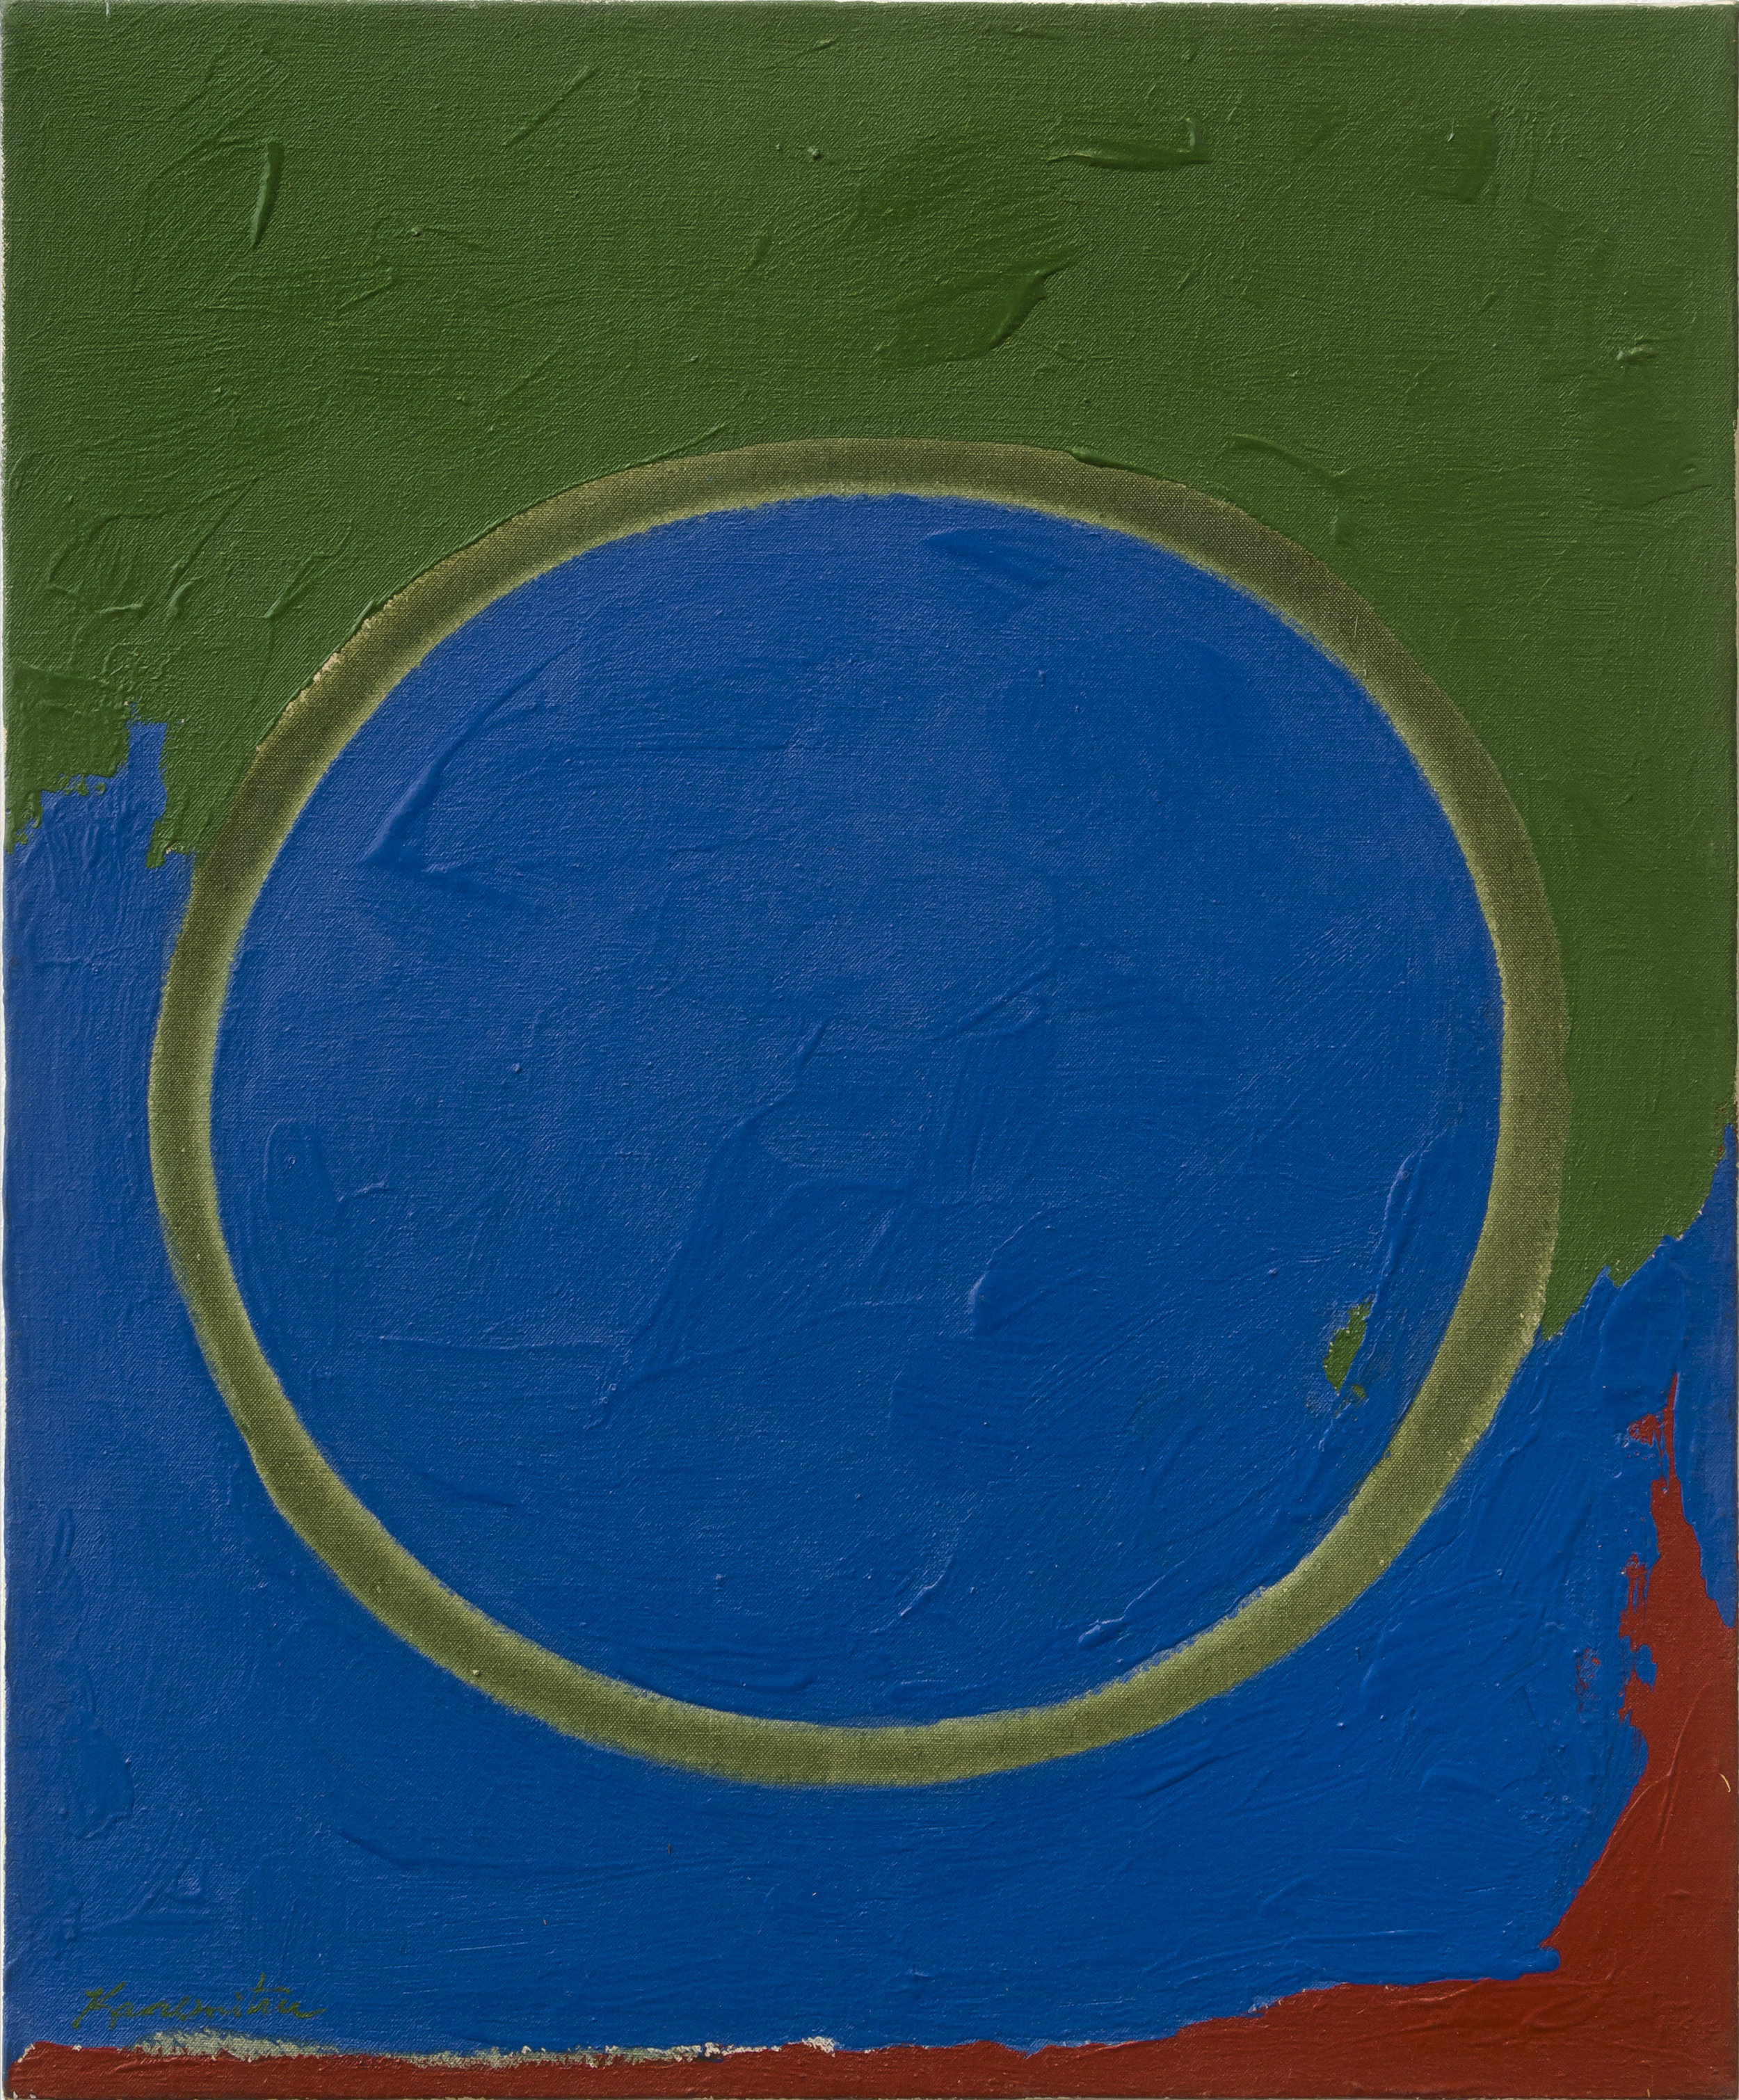 Opening , 1962 acrylic on canvas 24 x 20 inches; 61 x 76.2 centimeters